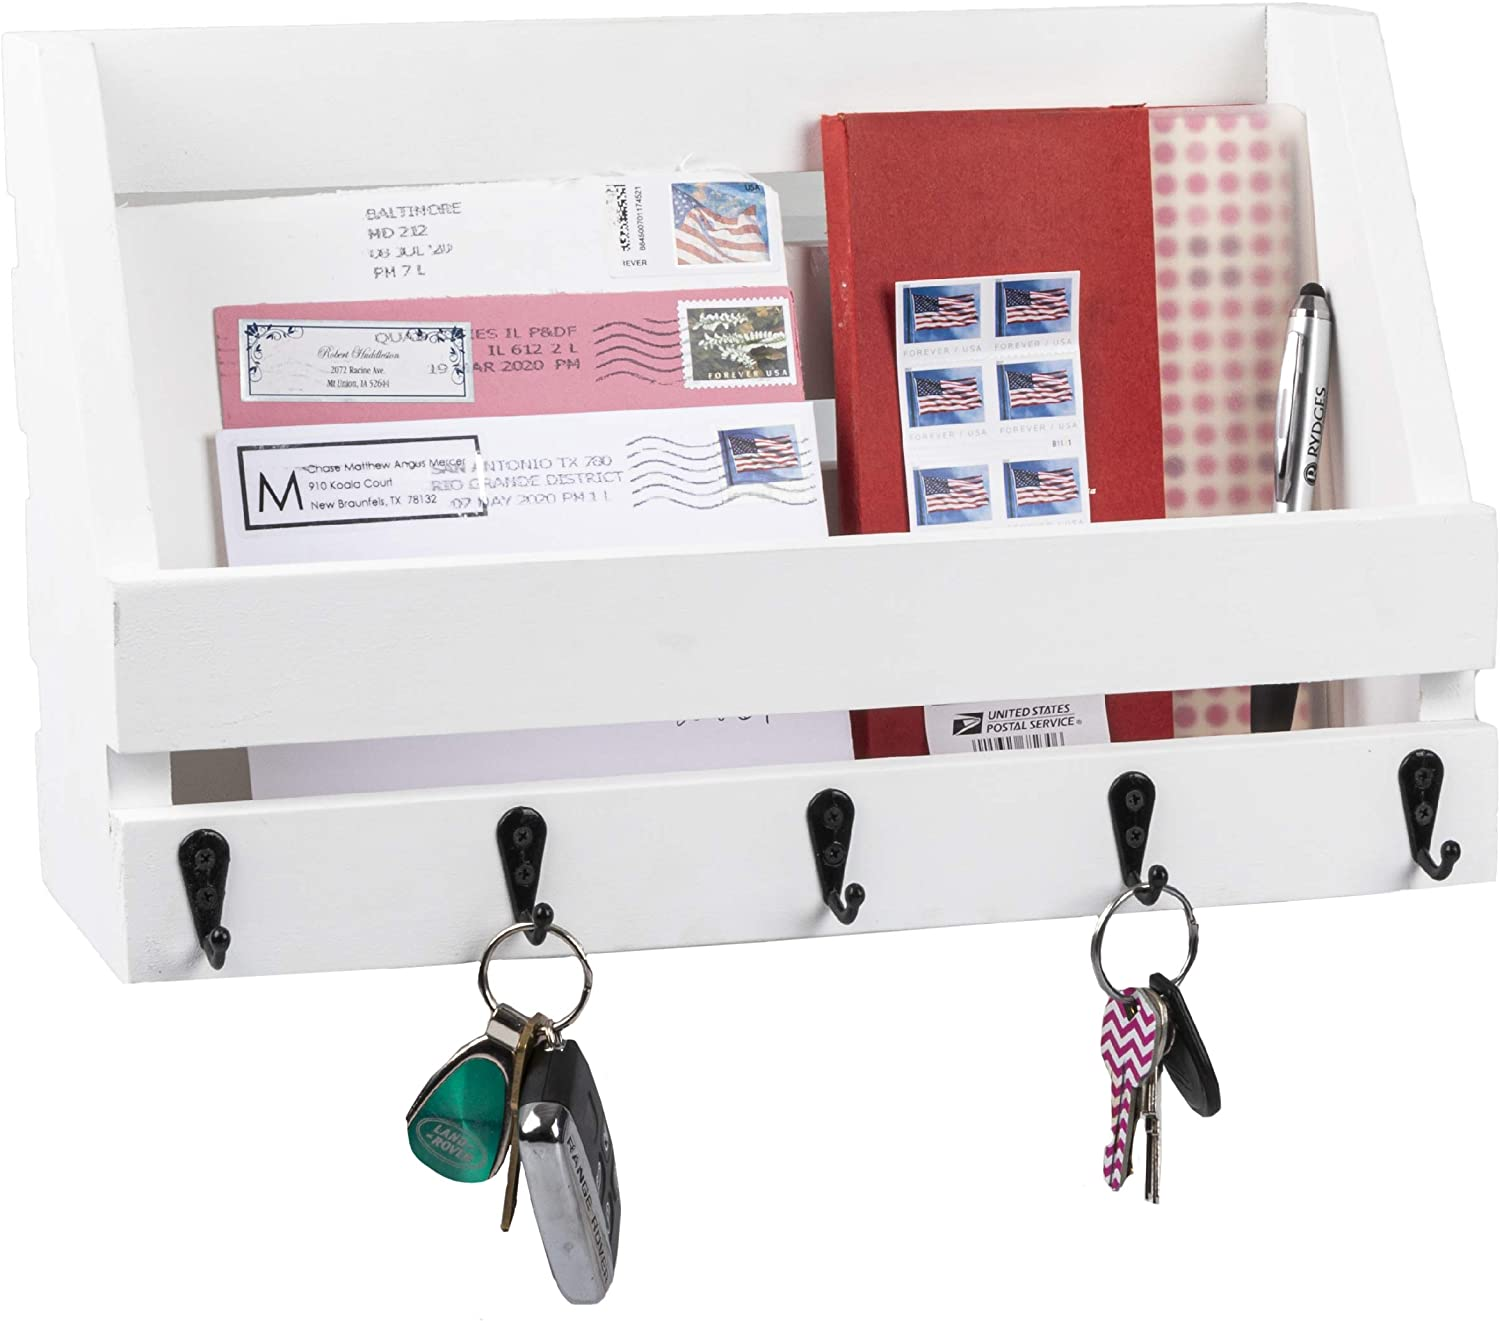 Key and Mail Holder for Wall - Wooden Wall Mount Mail Organizer & Key Rack - Weathered White Wood with Metal Hooks, Decorative